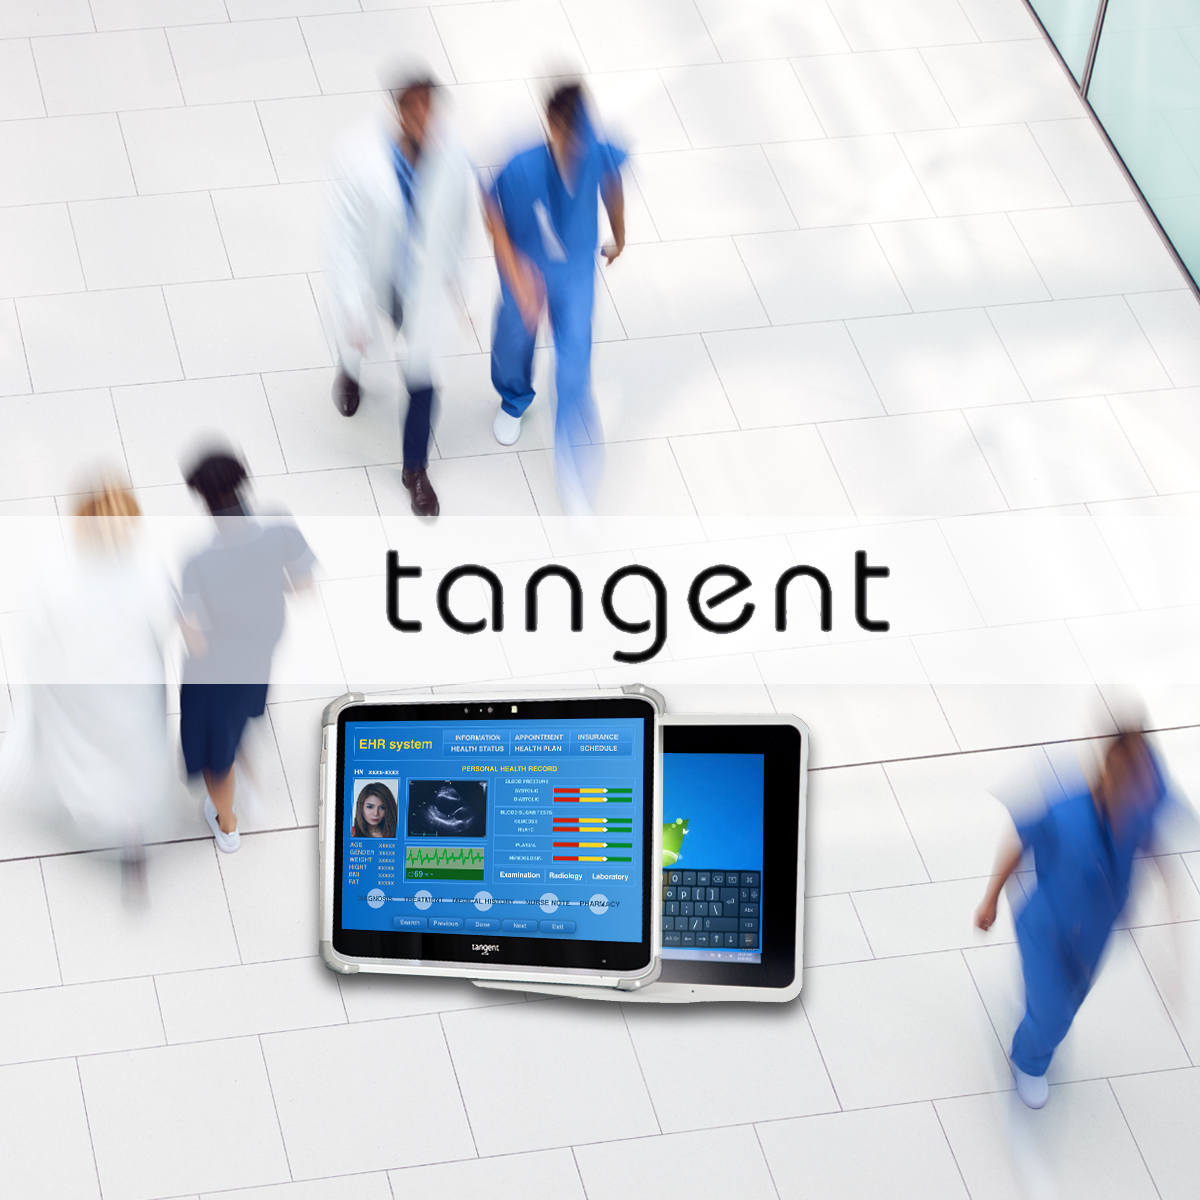 The safety of your doctors and nurses is priority  number 1 as flu season approaches.  Keep them safe with antimicrobial medical computers from Tangent. https://t.co/RA4u8TCYmB #tangent #medical #computers #hospital https://t.co/6imyEIvPI7